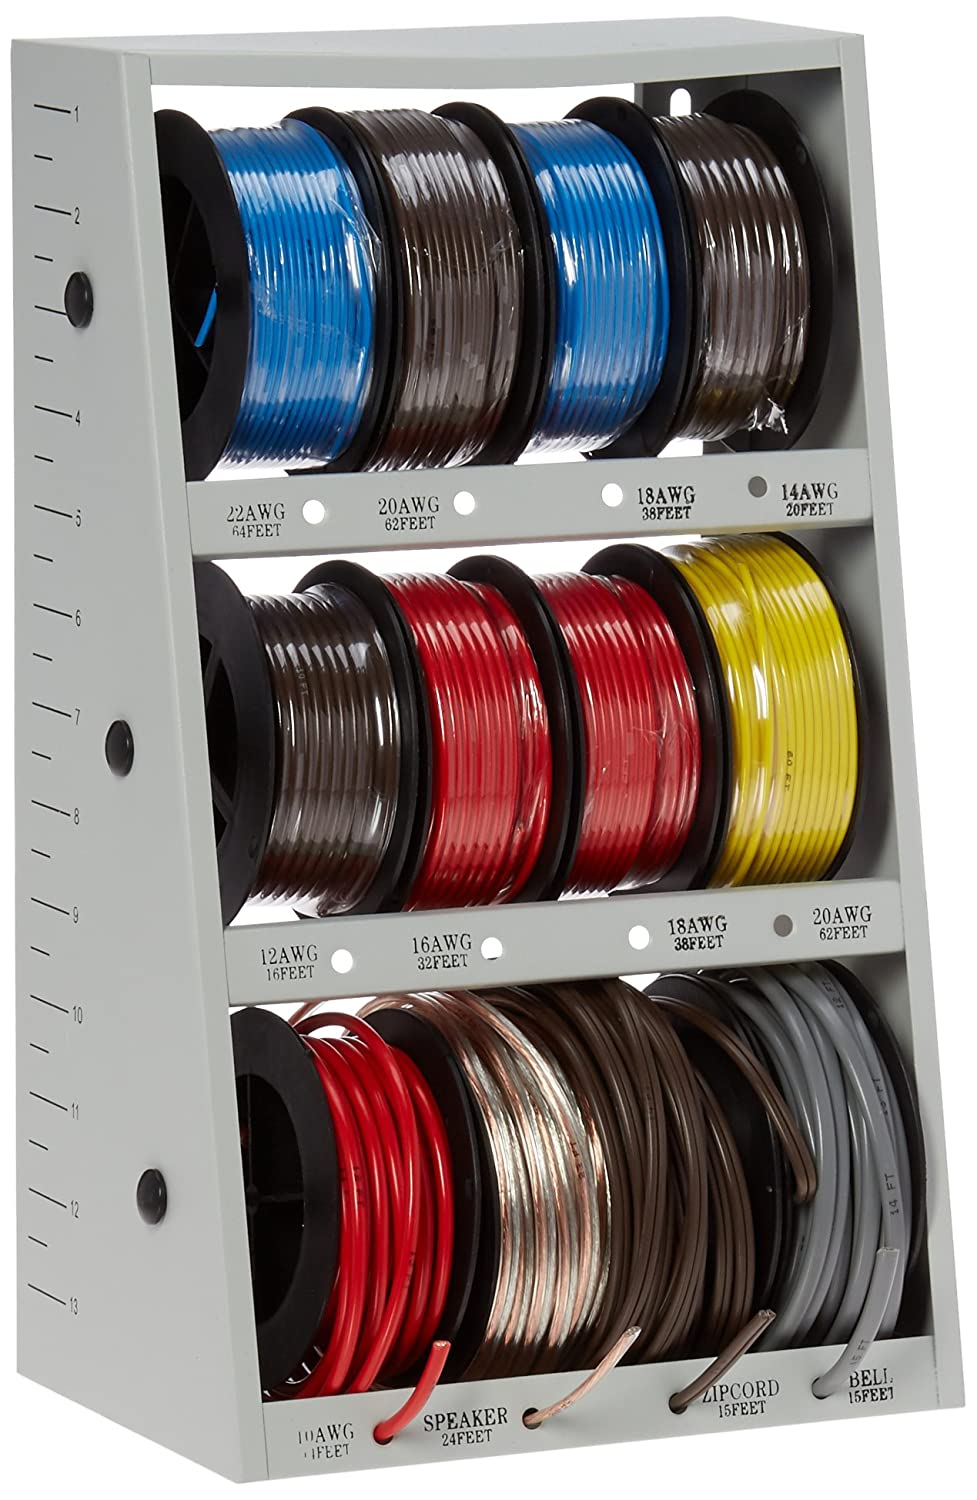 43111 12-Spool Automotive Wire ortment with Steel Rack (D132) on